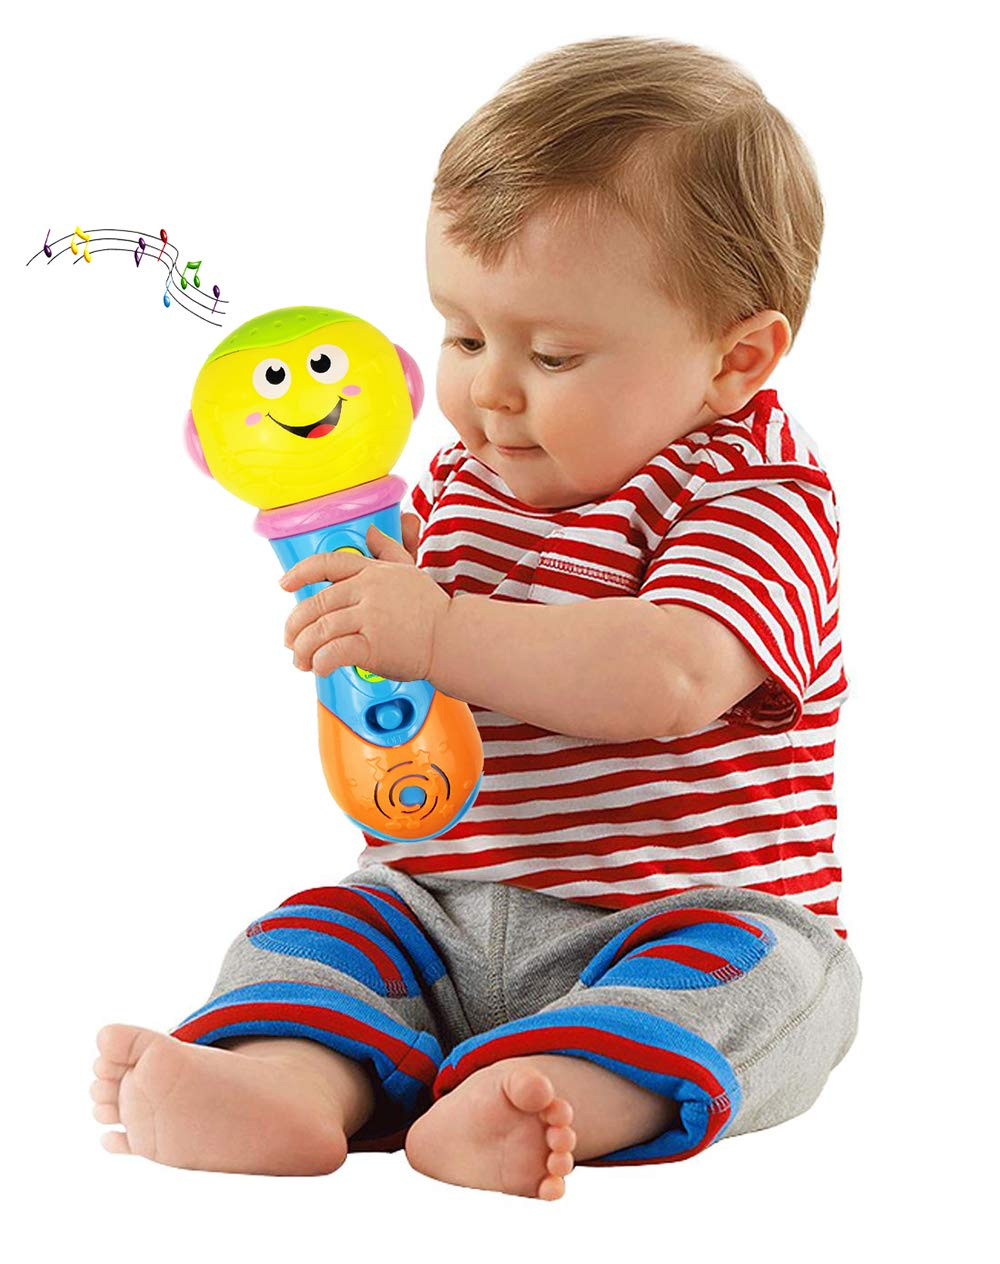 Toy for 6-12 Month Baby Toddler, Toy Microphone for 9-18 Month Girl Boy Toys Gift for 1-3 Year Old Babies Girl Music Toy for 12-24 Month Toddler Boys Birthday Gift Toy Age 1 2 3 by Jeacy (Image #5)